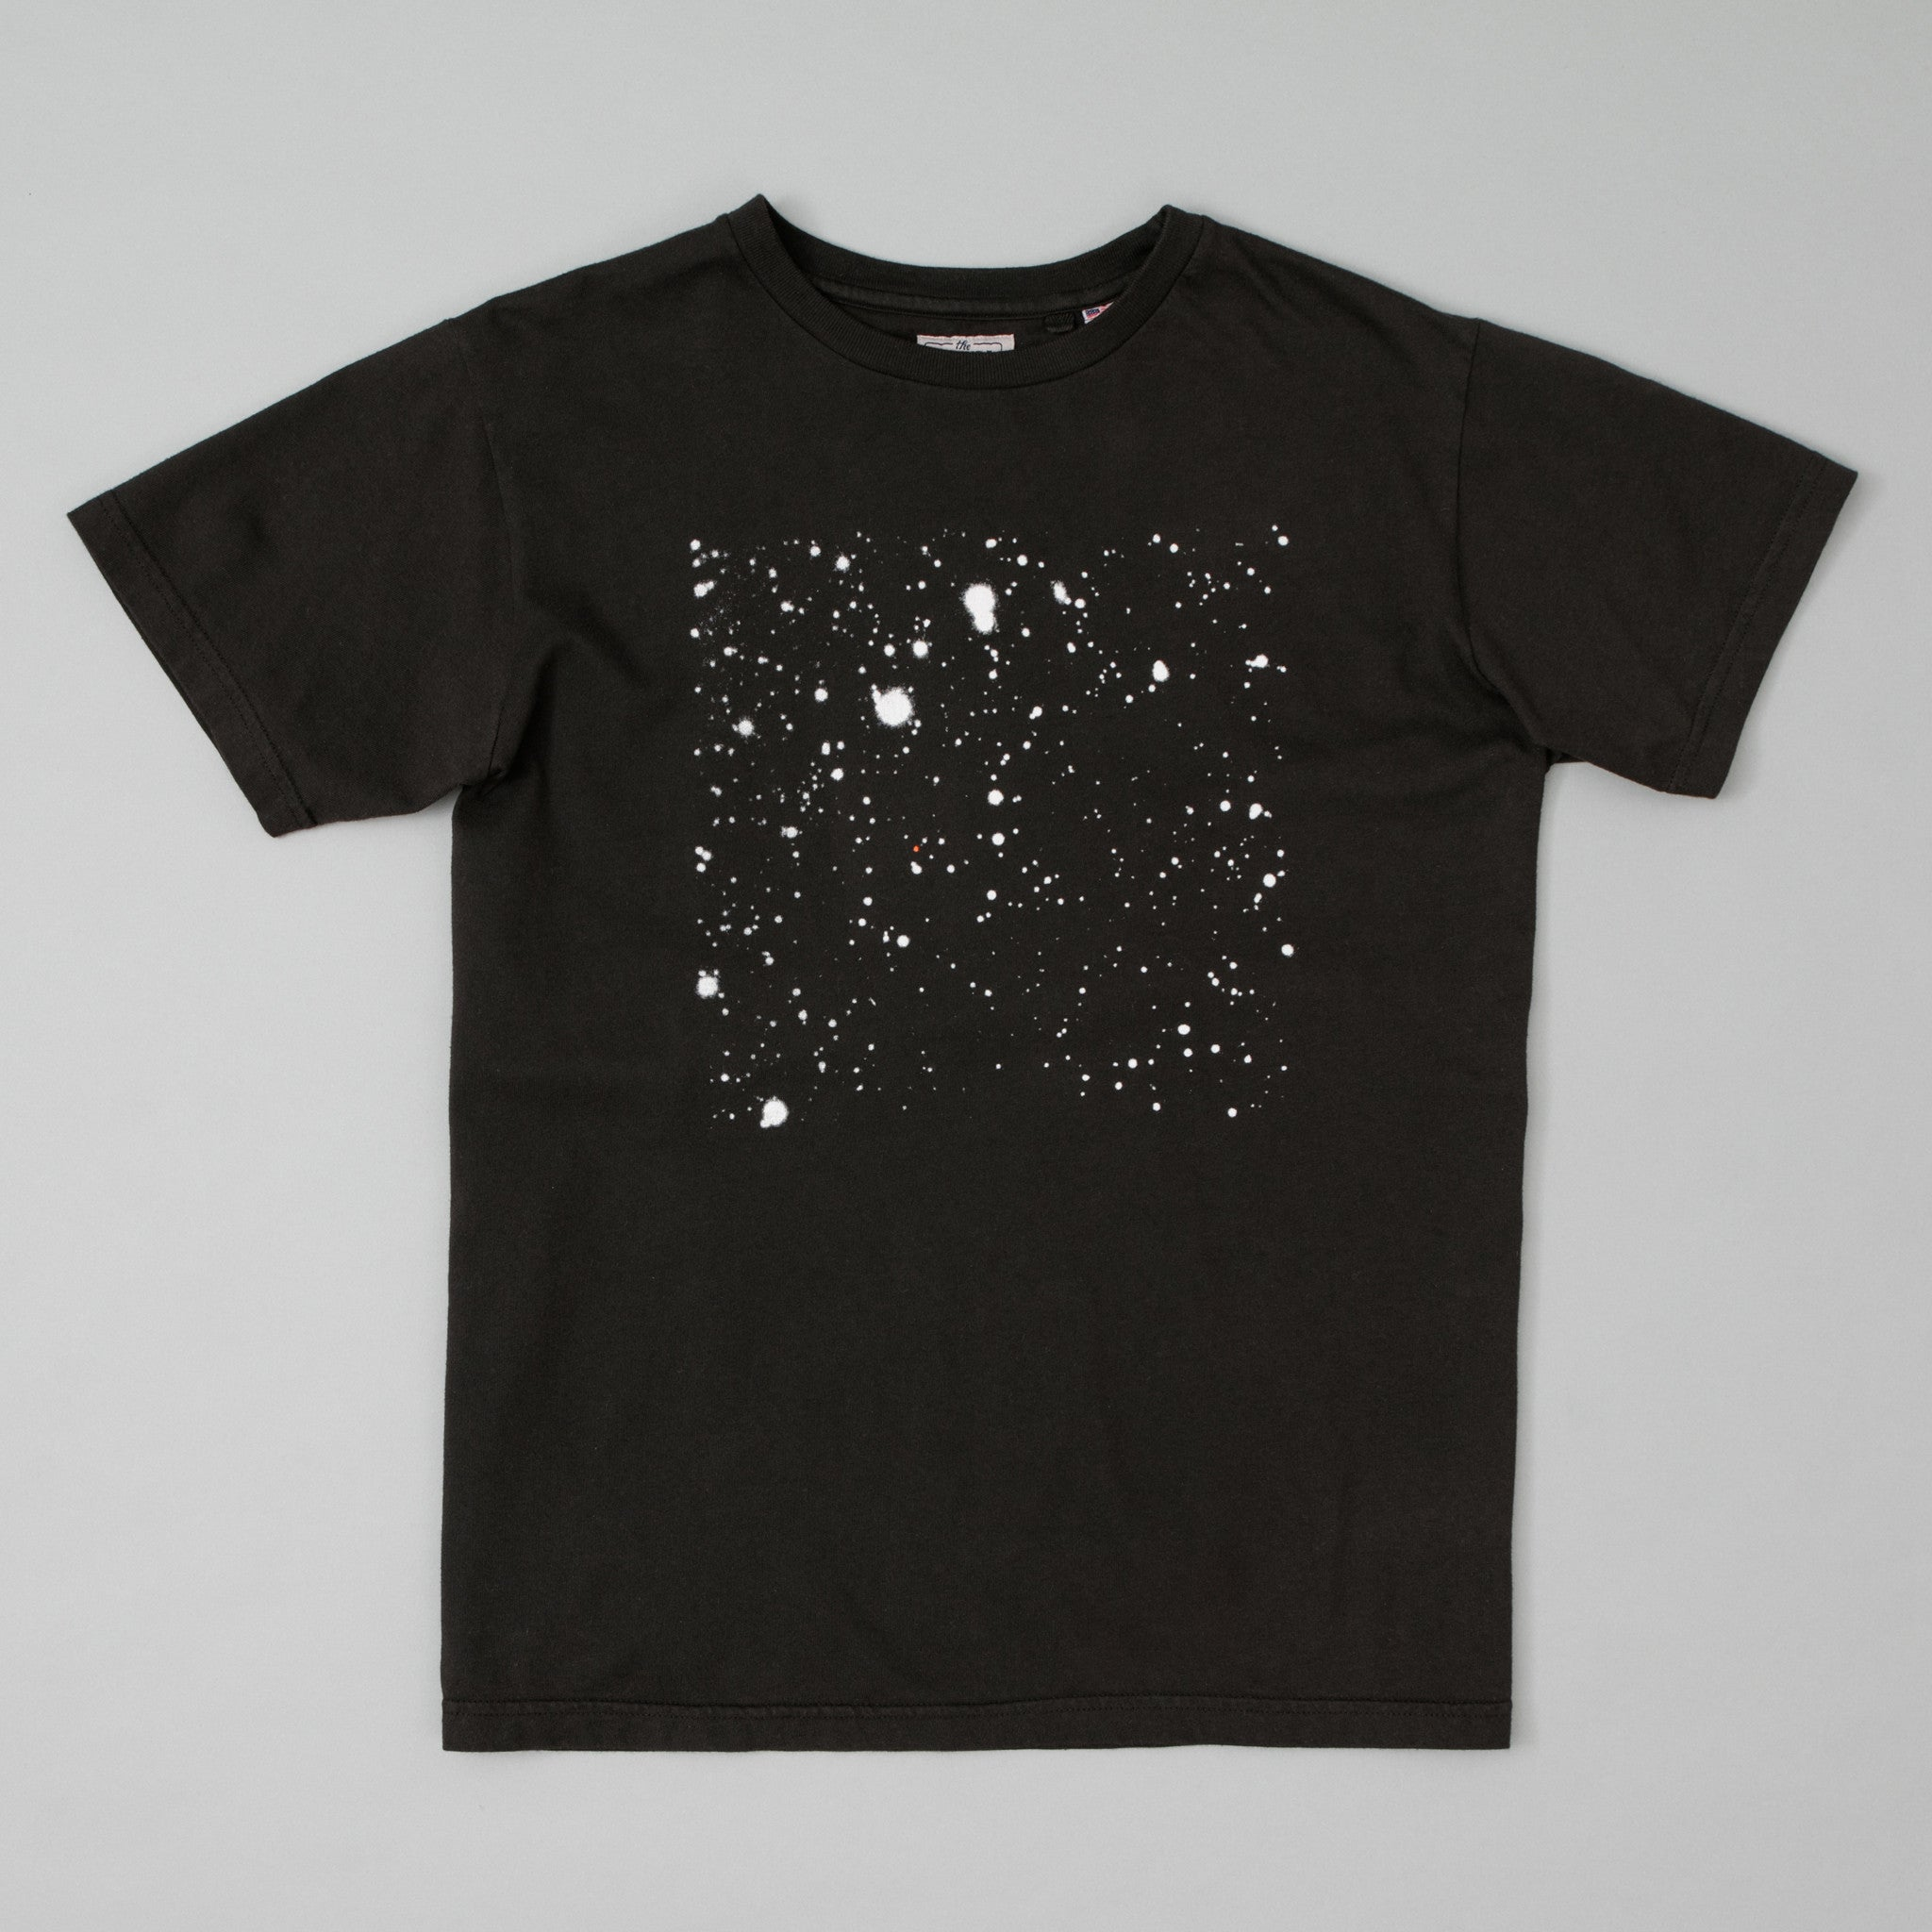 The Hill-Side - T-Shirt, Discovery of Pluto, Faded Black - TS1-1004 - image 1